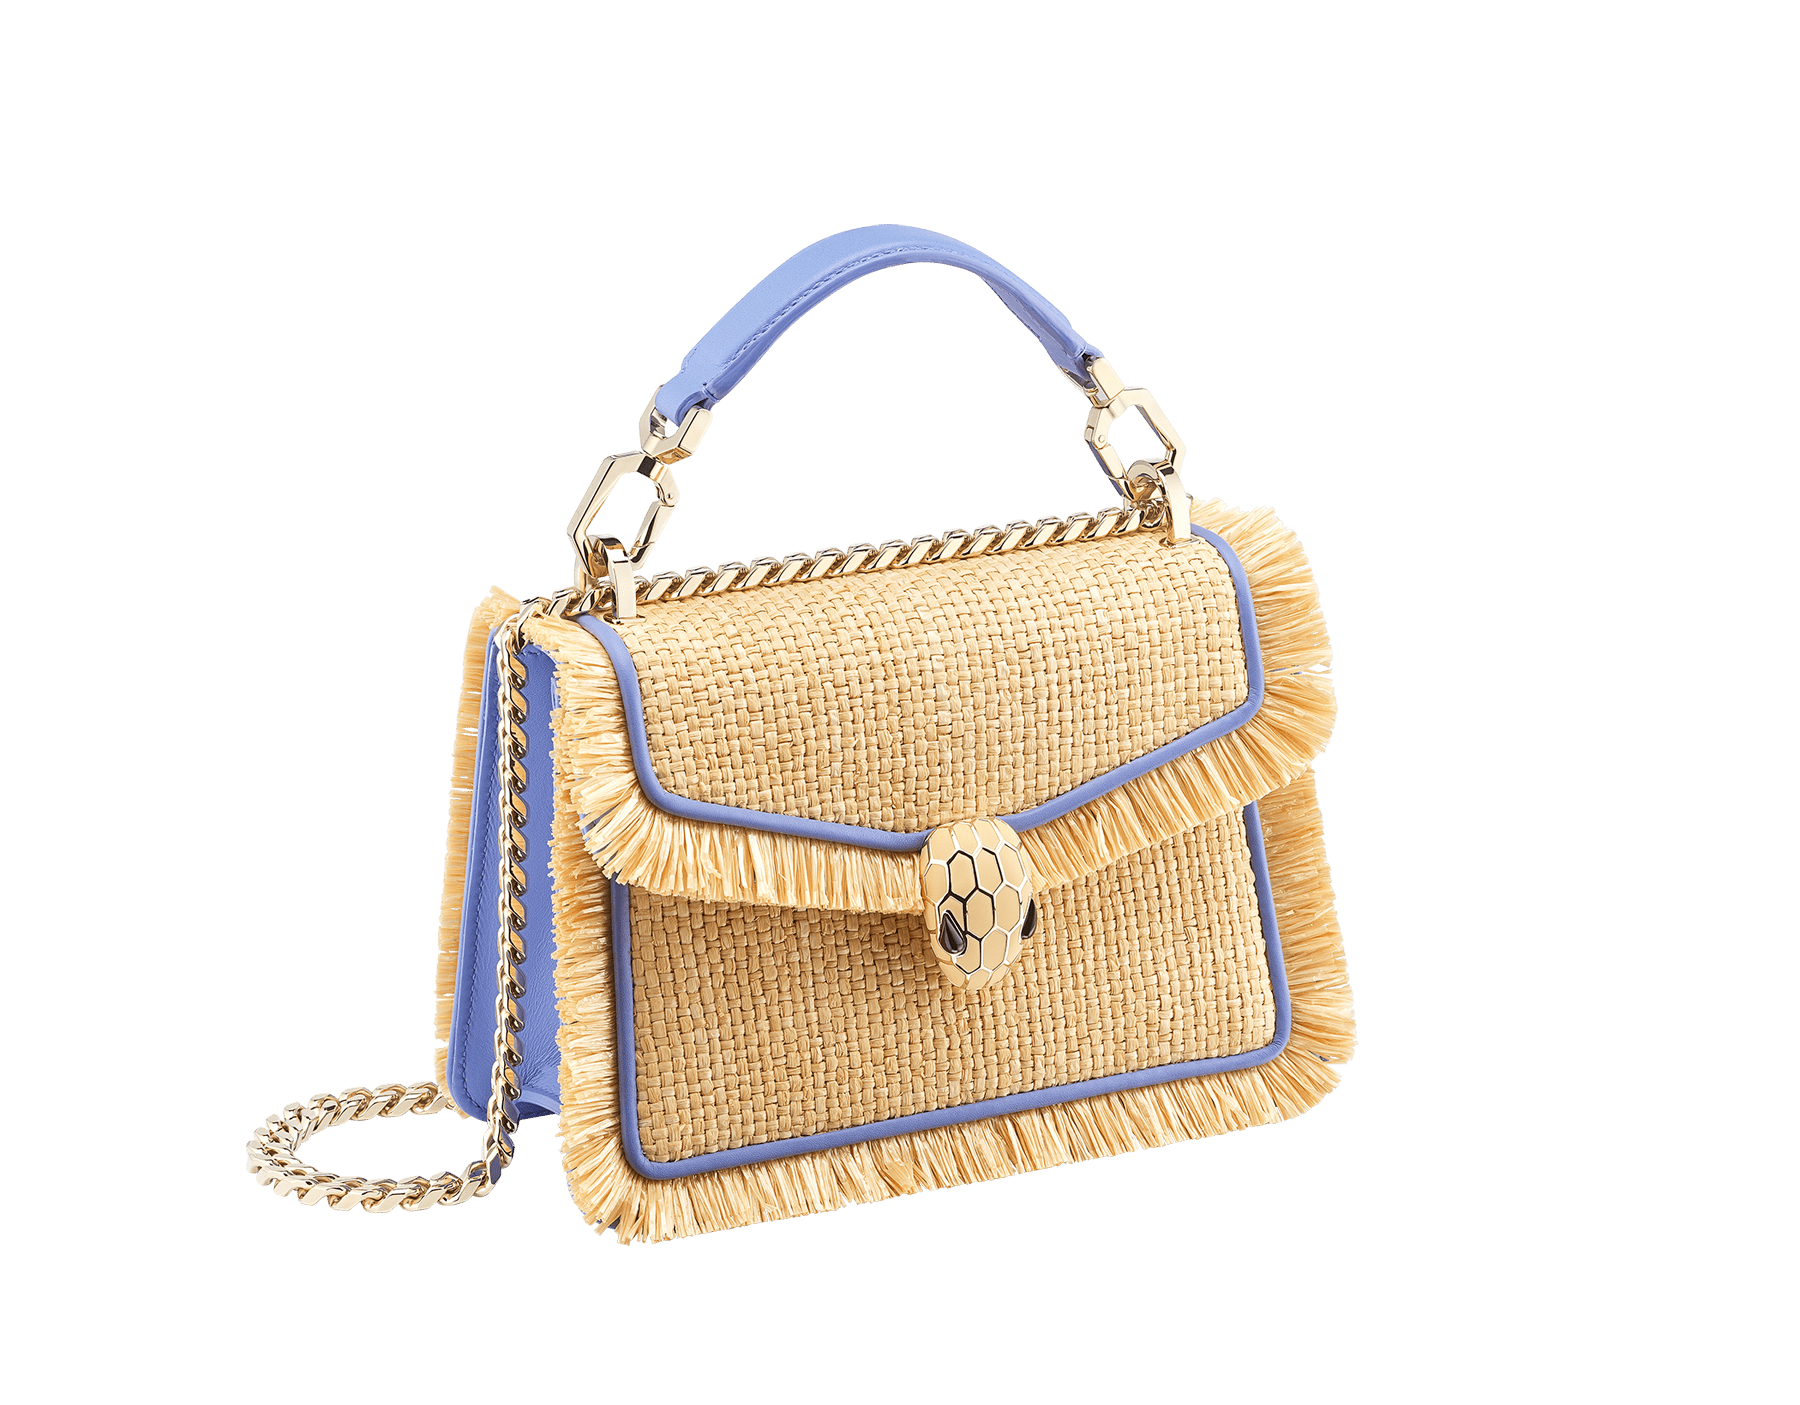 """""""Serpenti Diamond Blast"""" crossbody bag in beige raffia and Lavender Amethyst lilac calfskin frames finished with beige raffia fringes, and Lavender Amethyst lilac nappa leather internal lining. Alluring snakehead closure in light gold-plated brass, enhanced with full matte Natural beige enamel and black onyx eyes. 290907 image 2"""